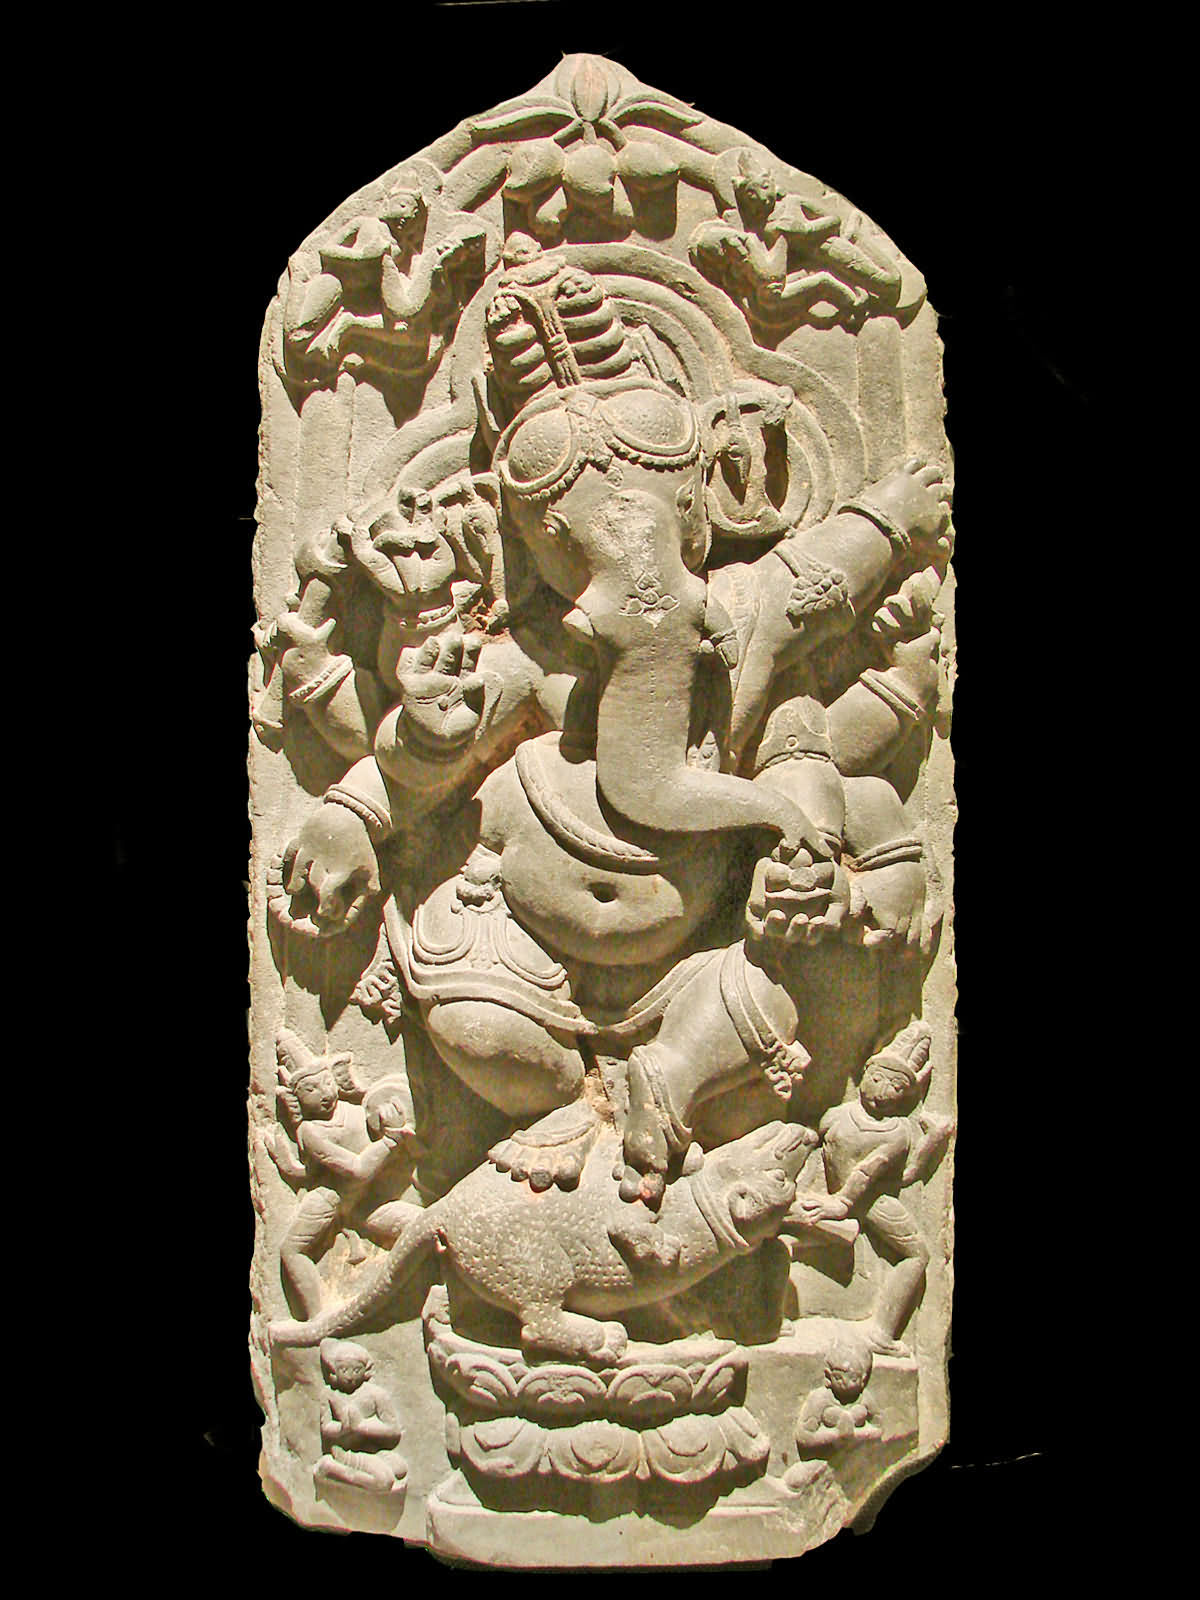 Lord Ganesh (Ganesh) Dancing Northern Bengal, 11th Century Jcmusée Asian Art In Berlin (Dahlem)